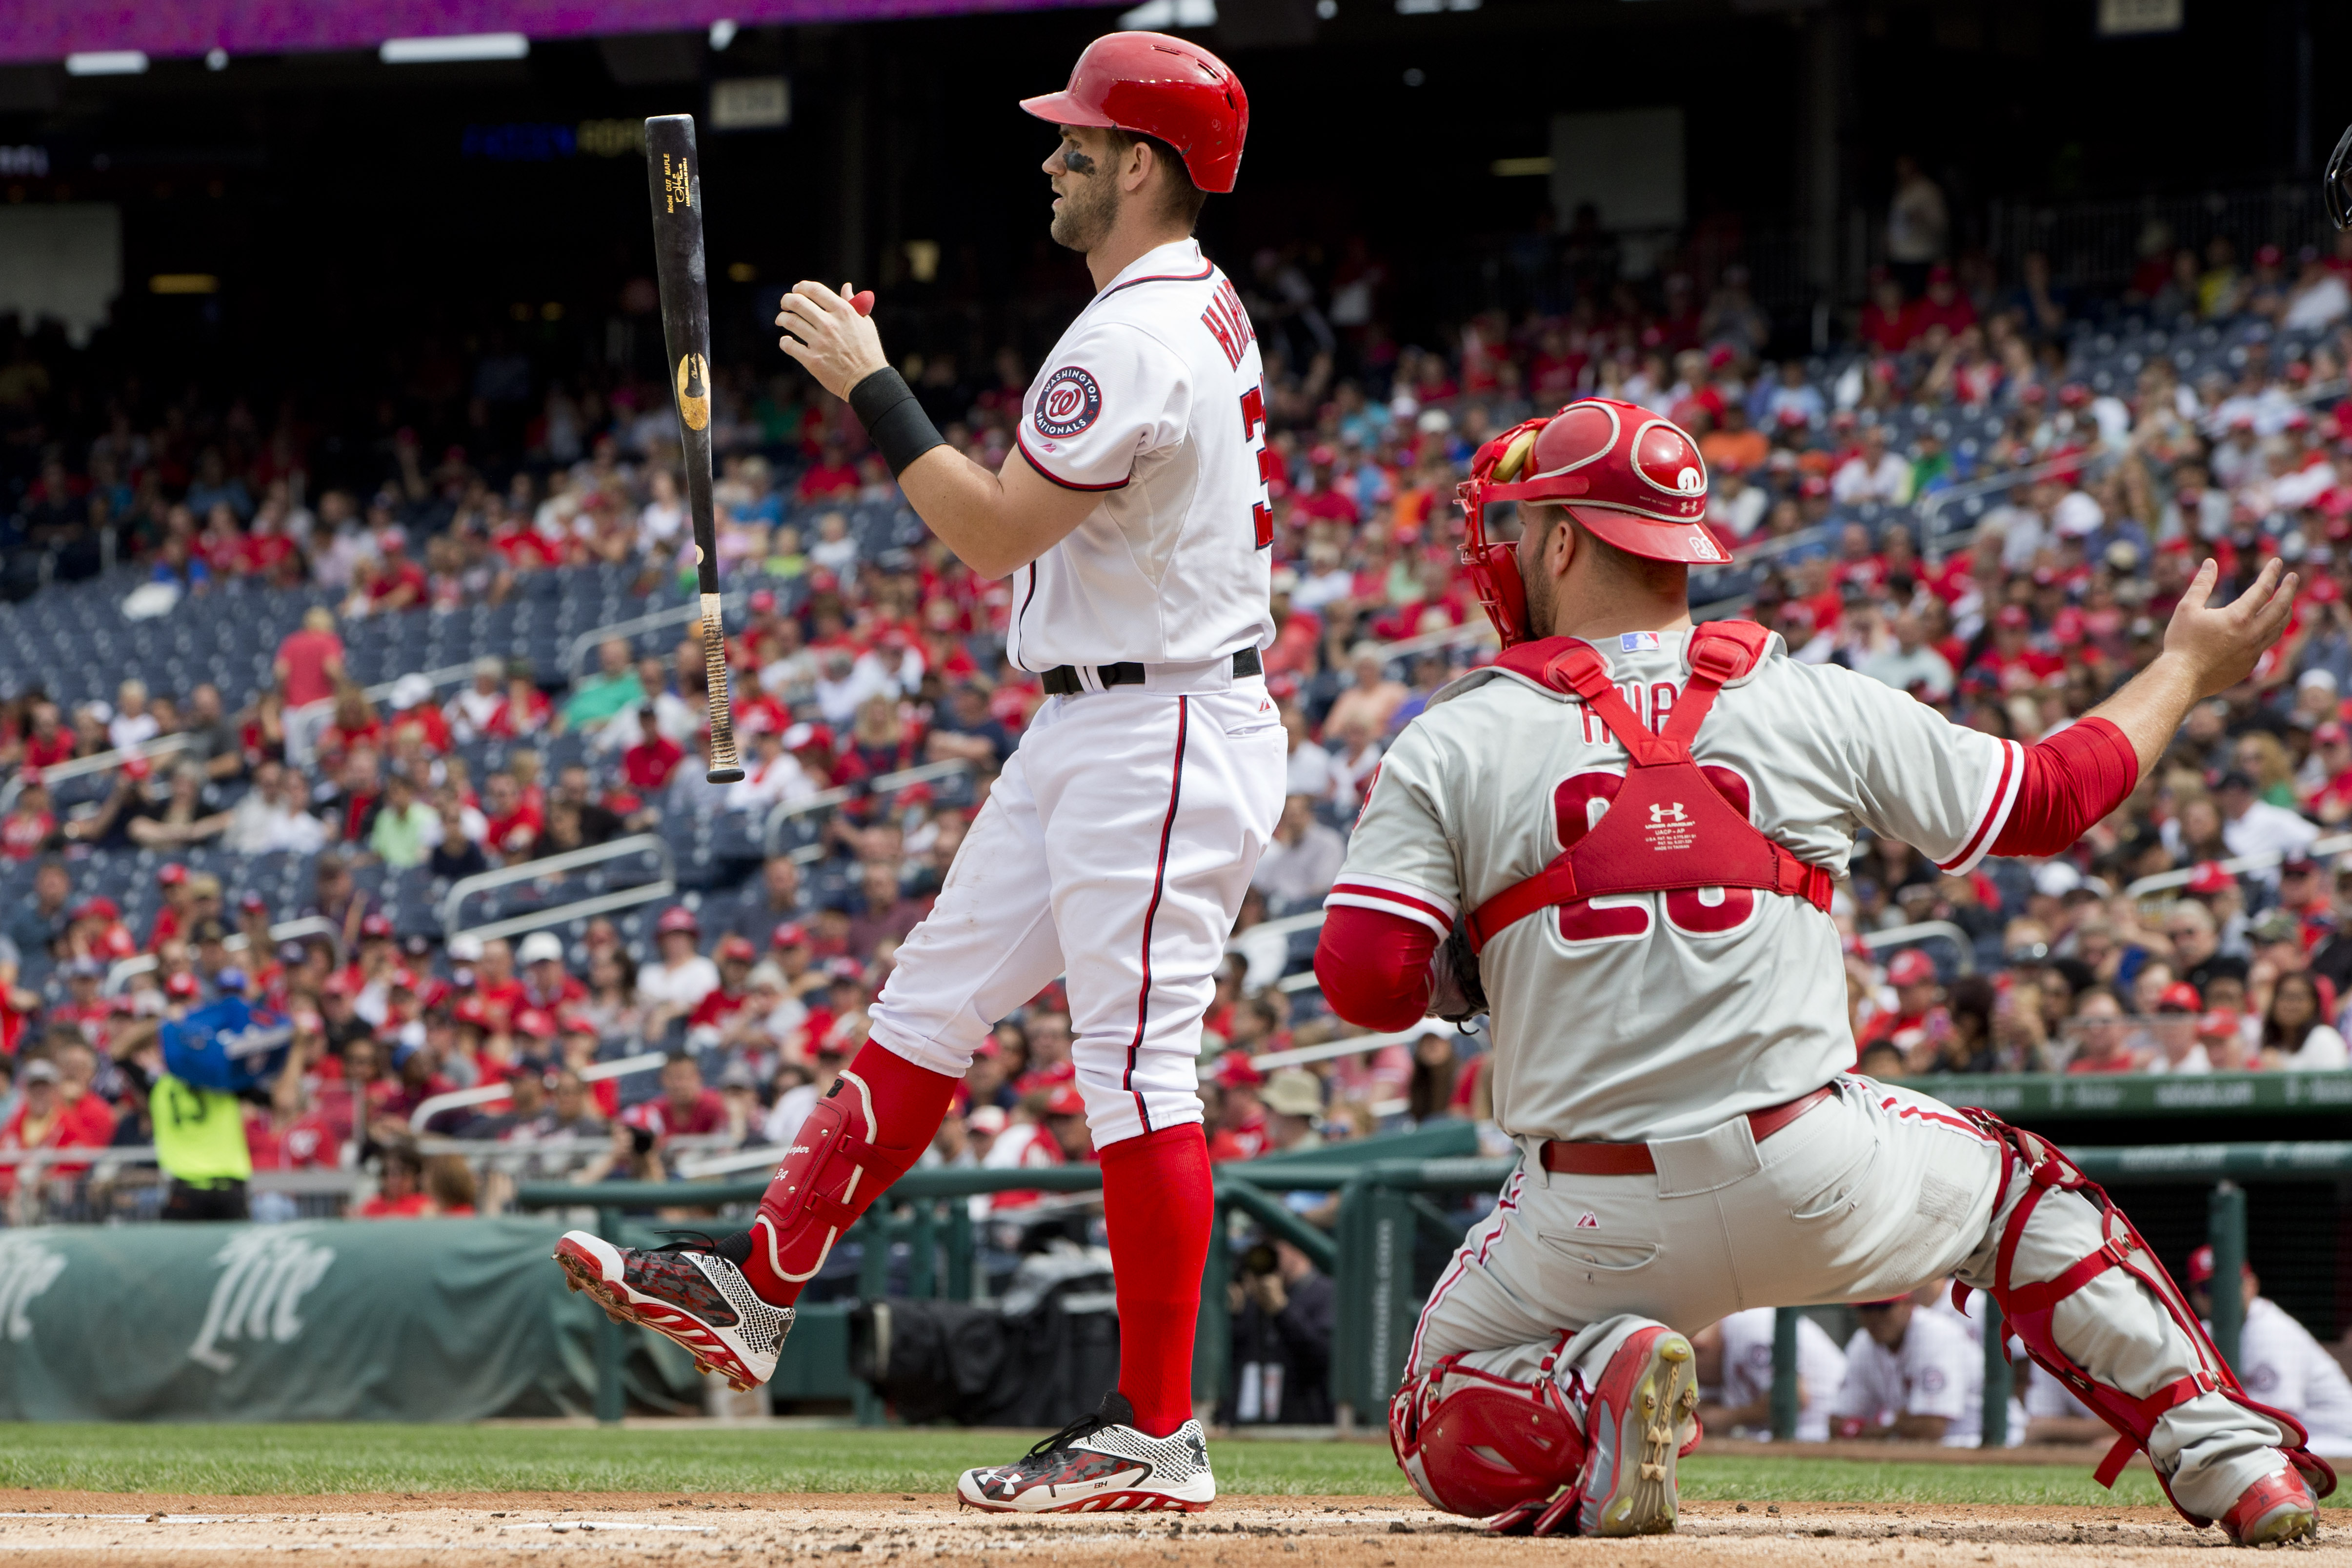 Washington Nationals' Bryce Harper (34) flips his bat in the air while batting in the first inning of a baseball game against the Philadelphia Phillies at Nationals Park, in Washington, on Sunday, Sept. 27, 2015, next to Phillies catcher Erik Kratz (28).